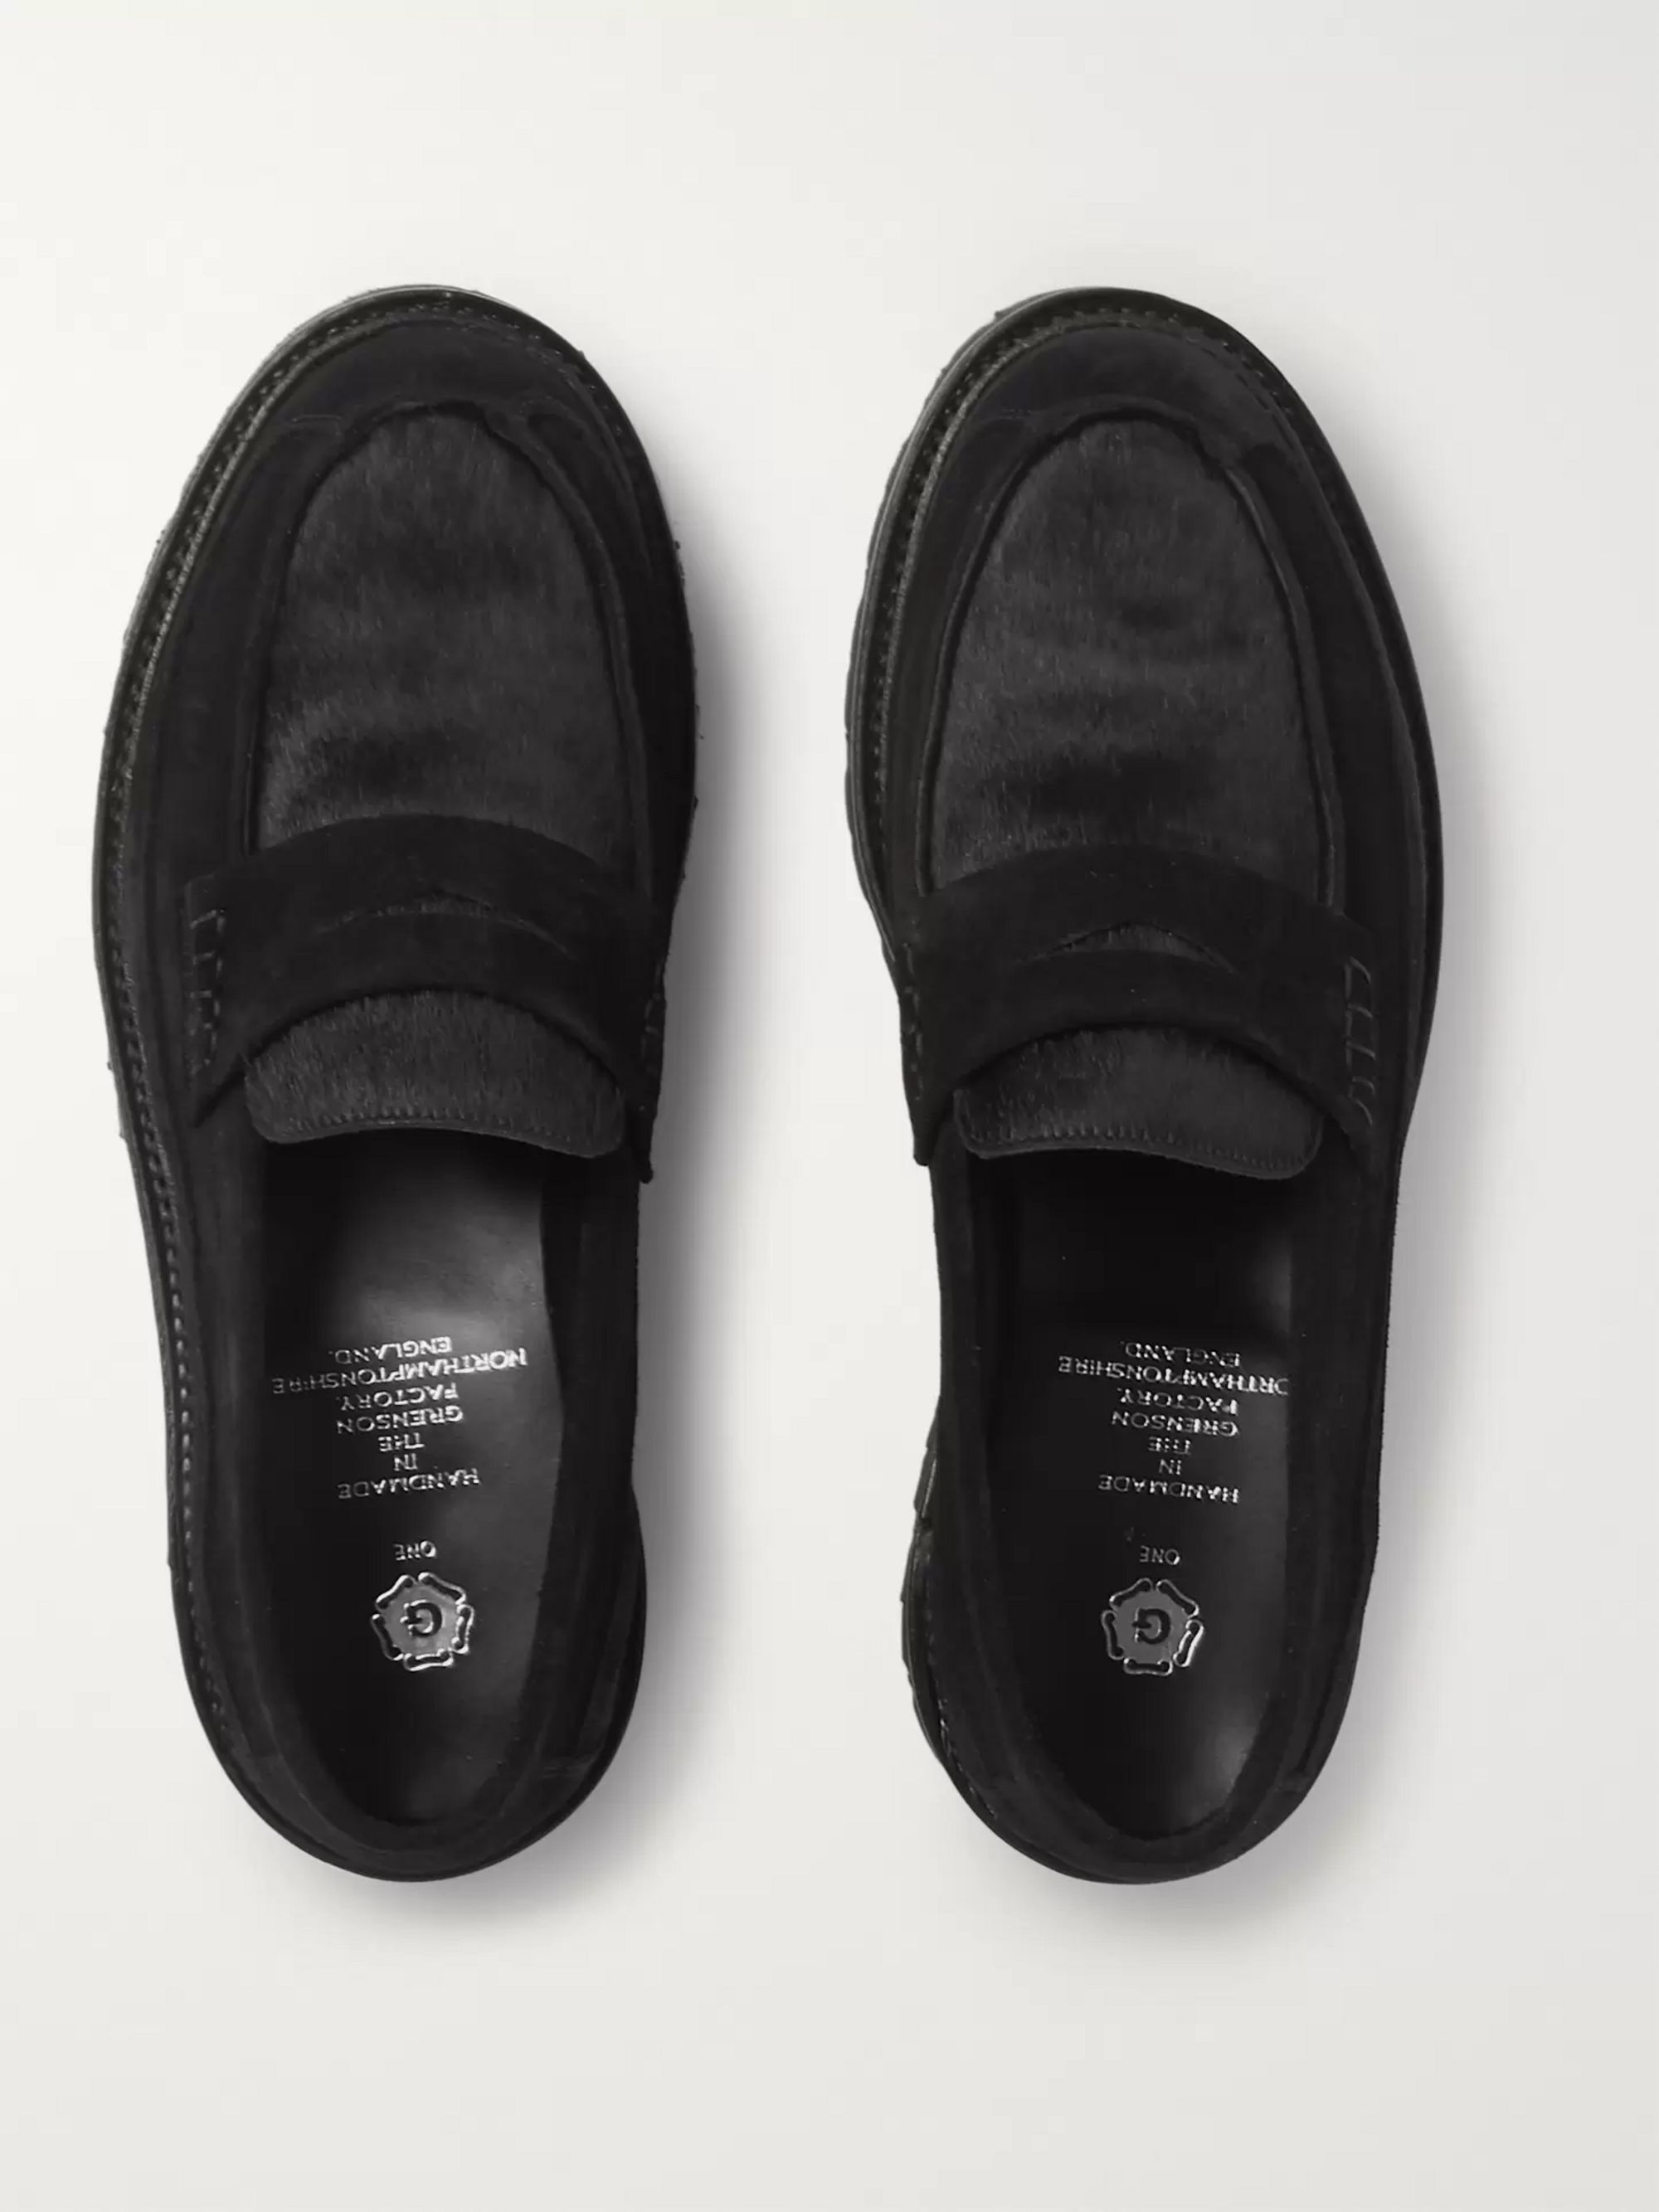 Grenson Suede and Calf Hair Penny Loafers